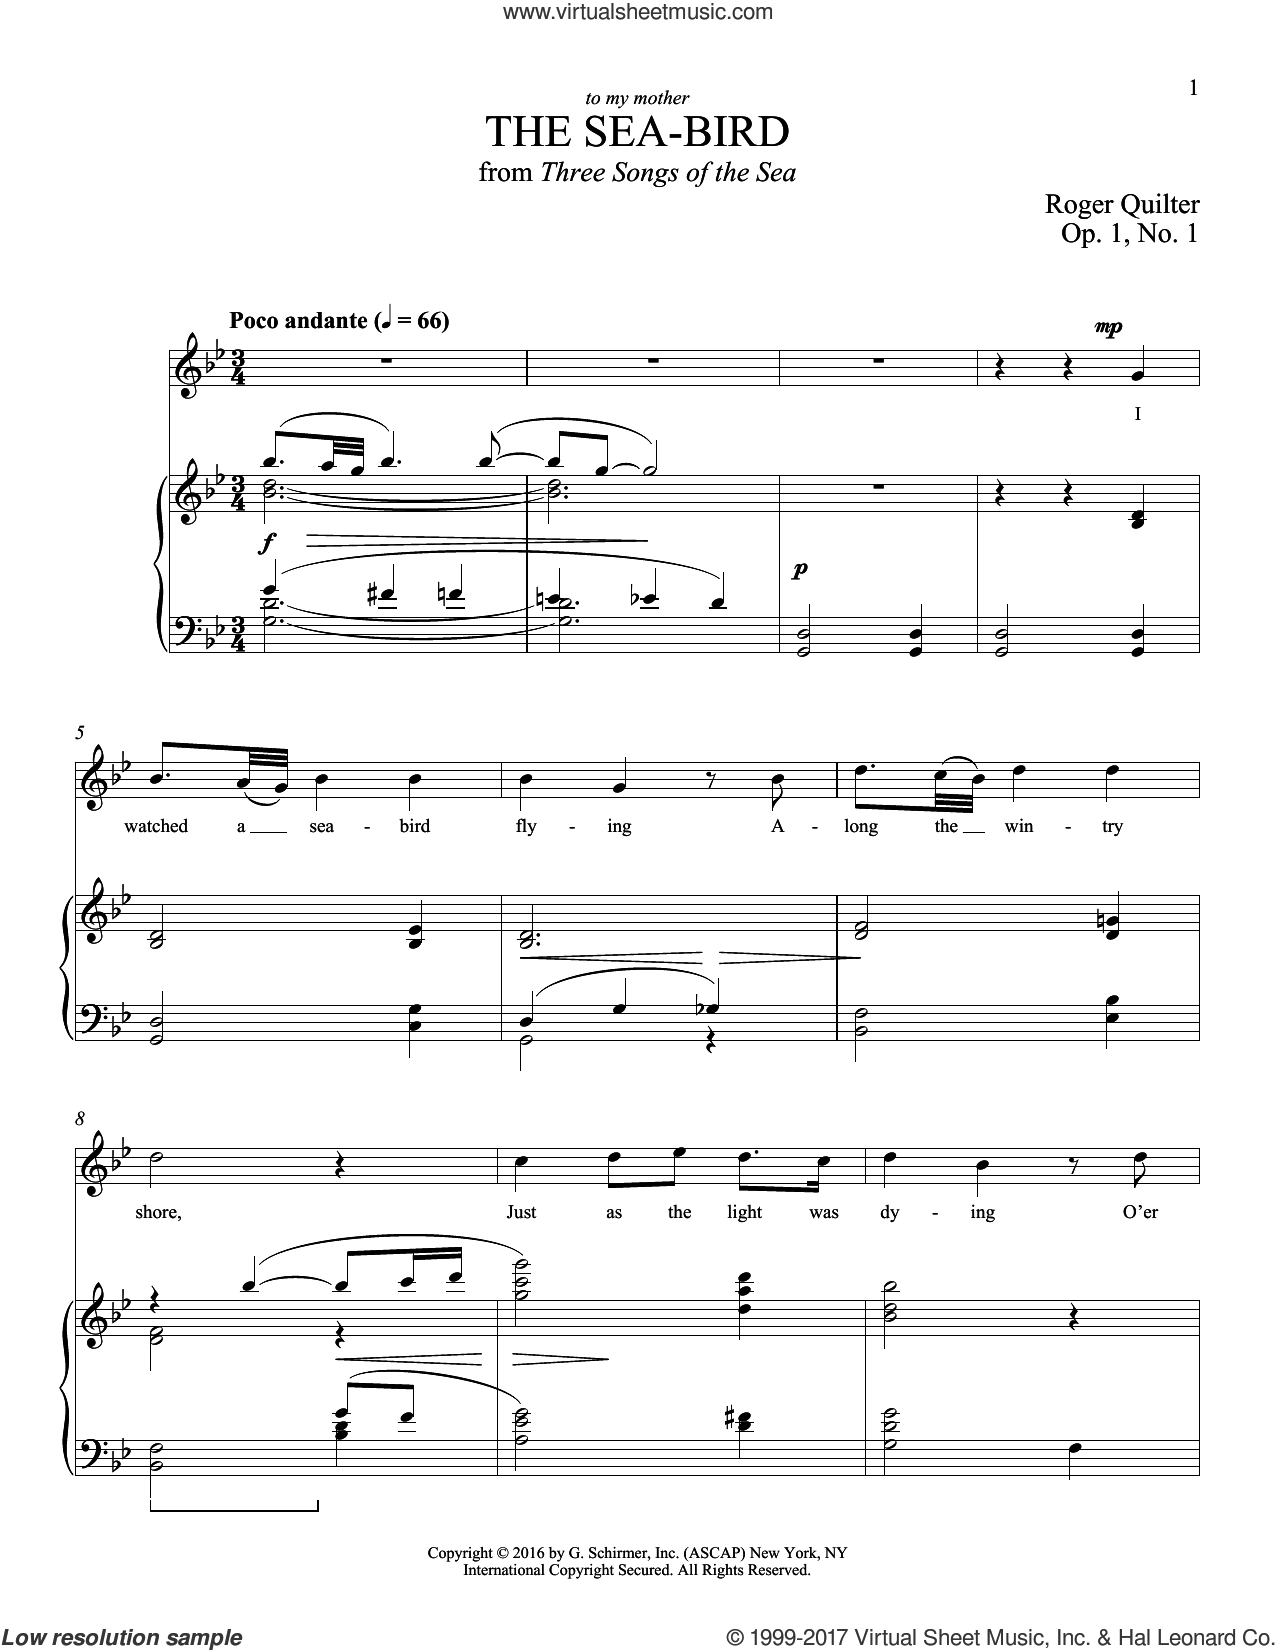 The Sea-Bird sheet music for voice and piano (Tenor) by Roger Quilter, intermediate